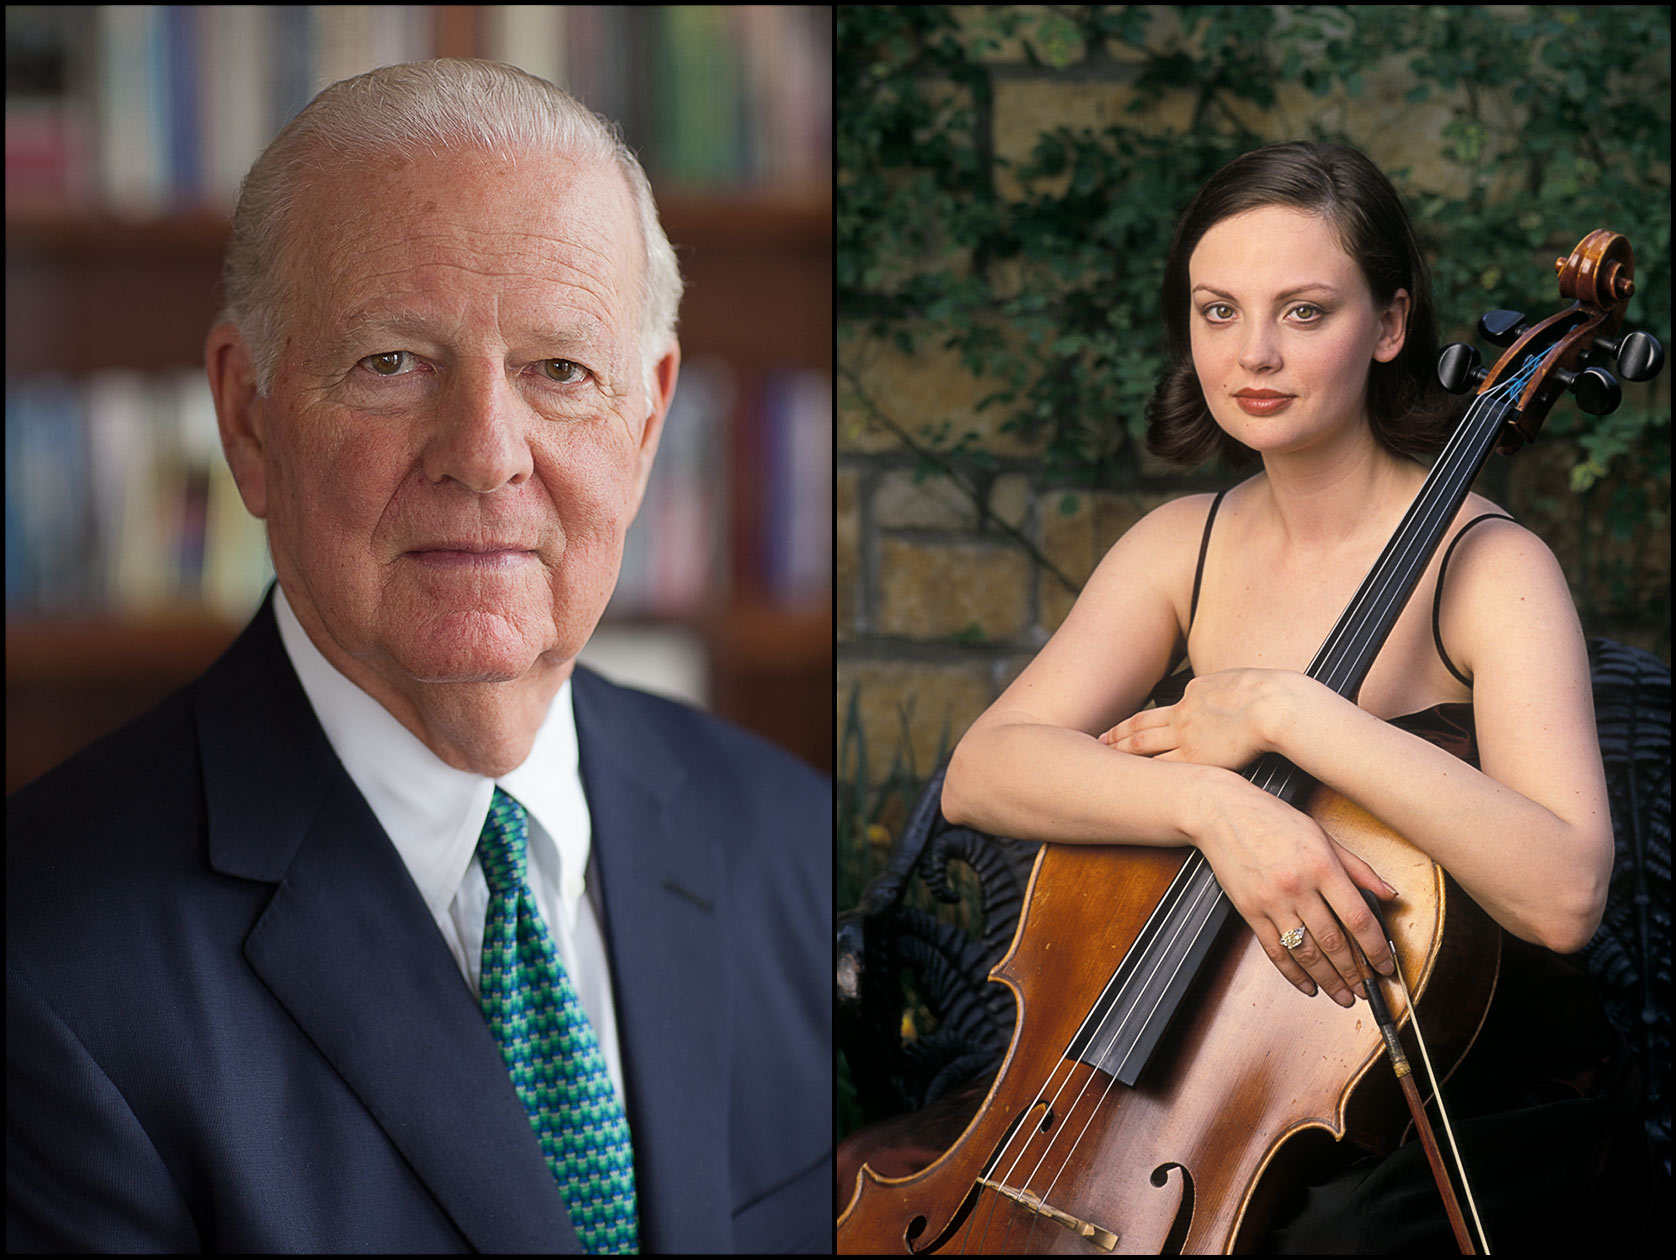 James Baker, former U. S. Secretary of State, in his office (L), Portrait of cellist Nina Kotova in a garden with her cello (R).